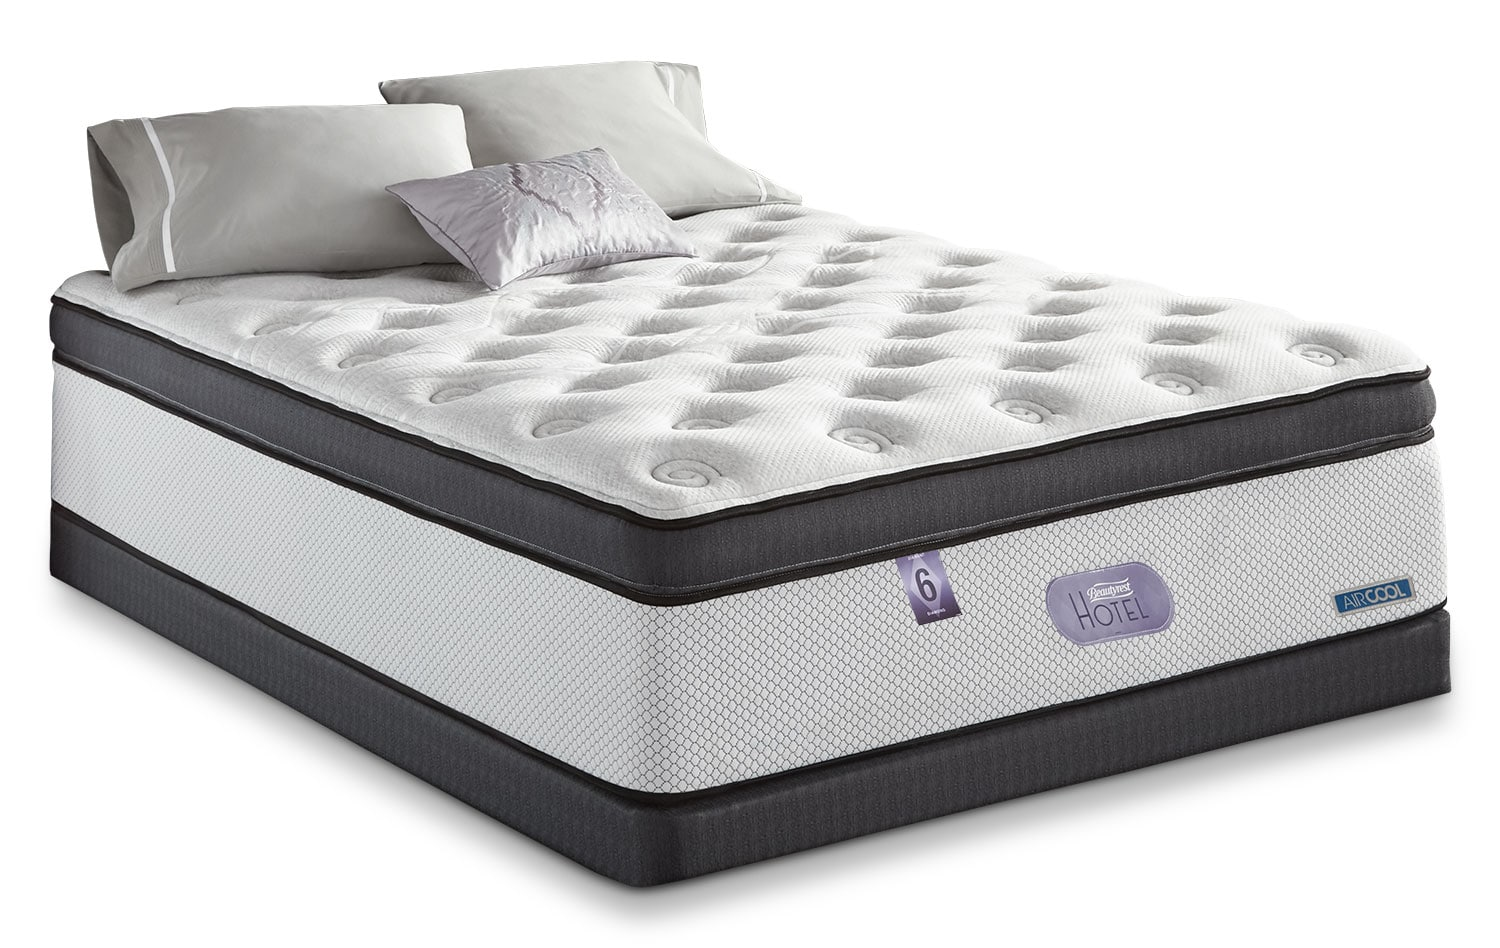 Mattresses and Bedding - Simmons Beautyrest® Hotel Diamond 6.0 Ultra Comfort Top Plush Low-Profile Split Queen Mattress Set